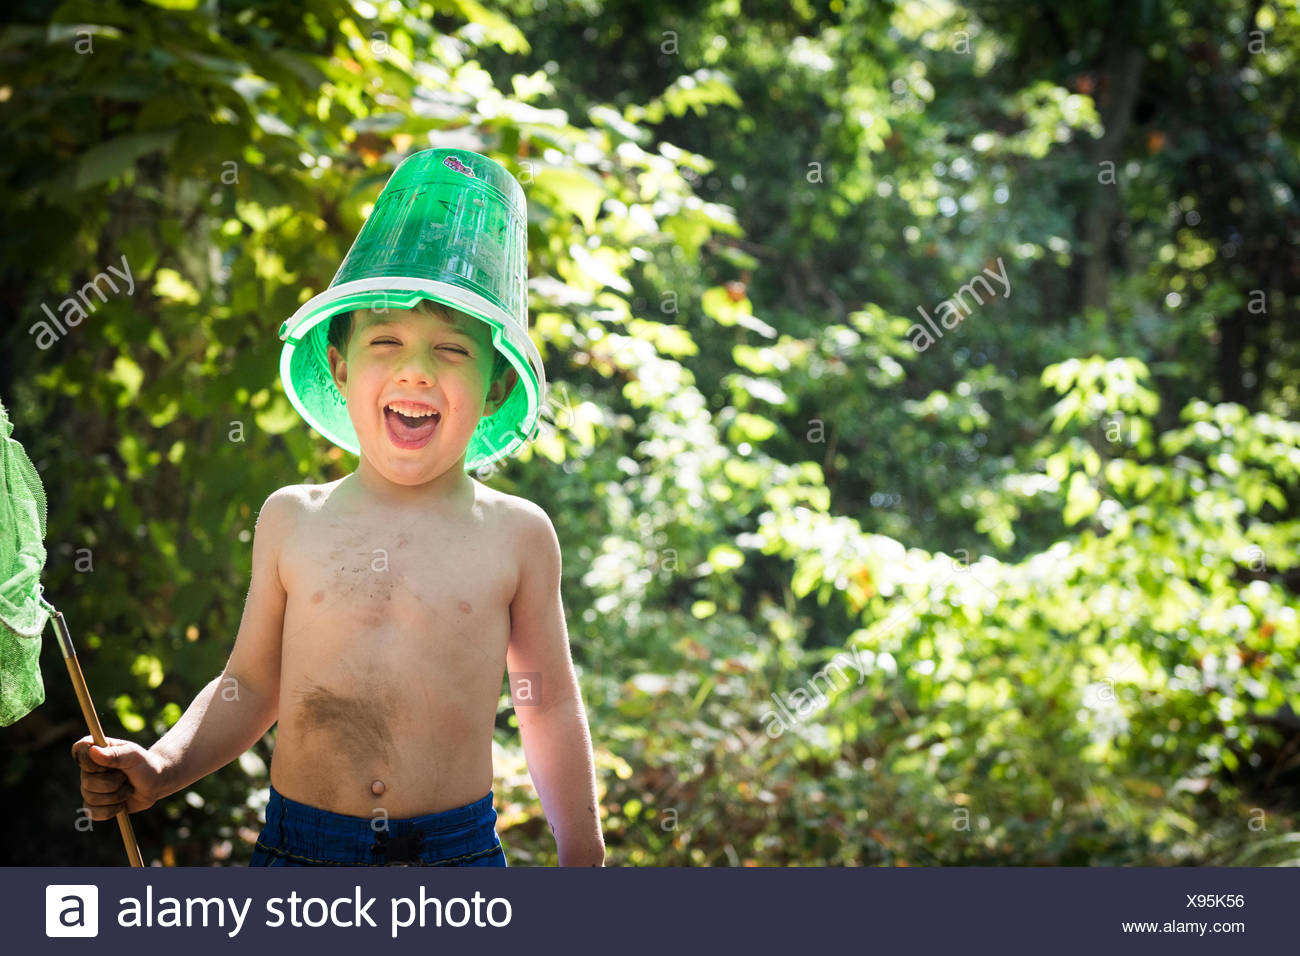 Toddler boy jokes with a bucket on his head and butterfly net in hand while next to creek in Bidwell Park, Chico, California. - Stock Image